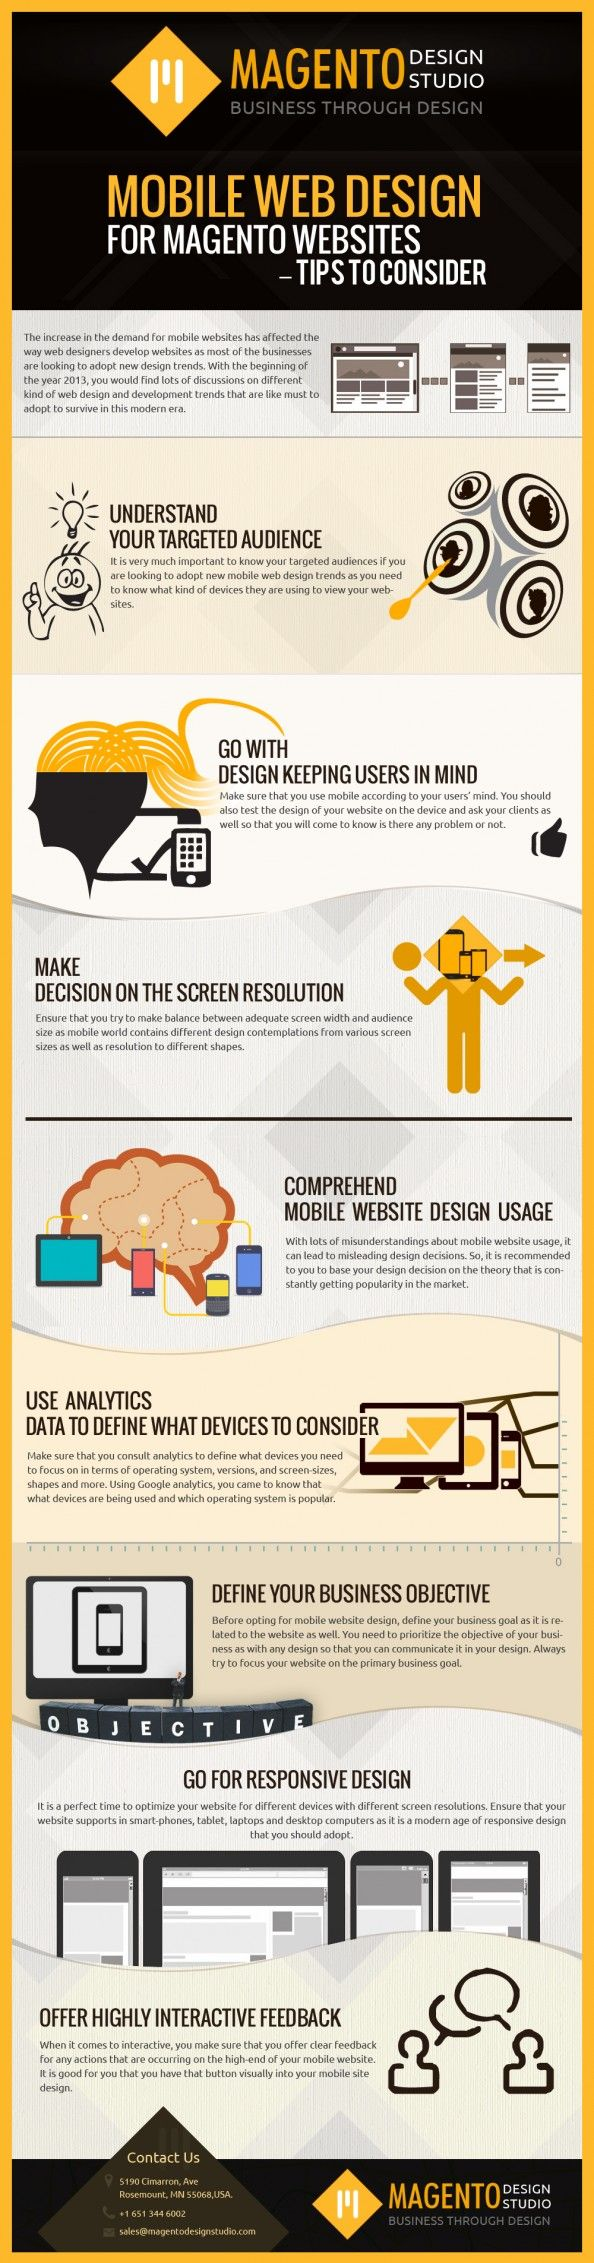 Mobile #WebDesign for Magento Websites – Tips to Consider #web #mobility